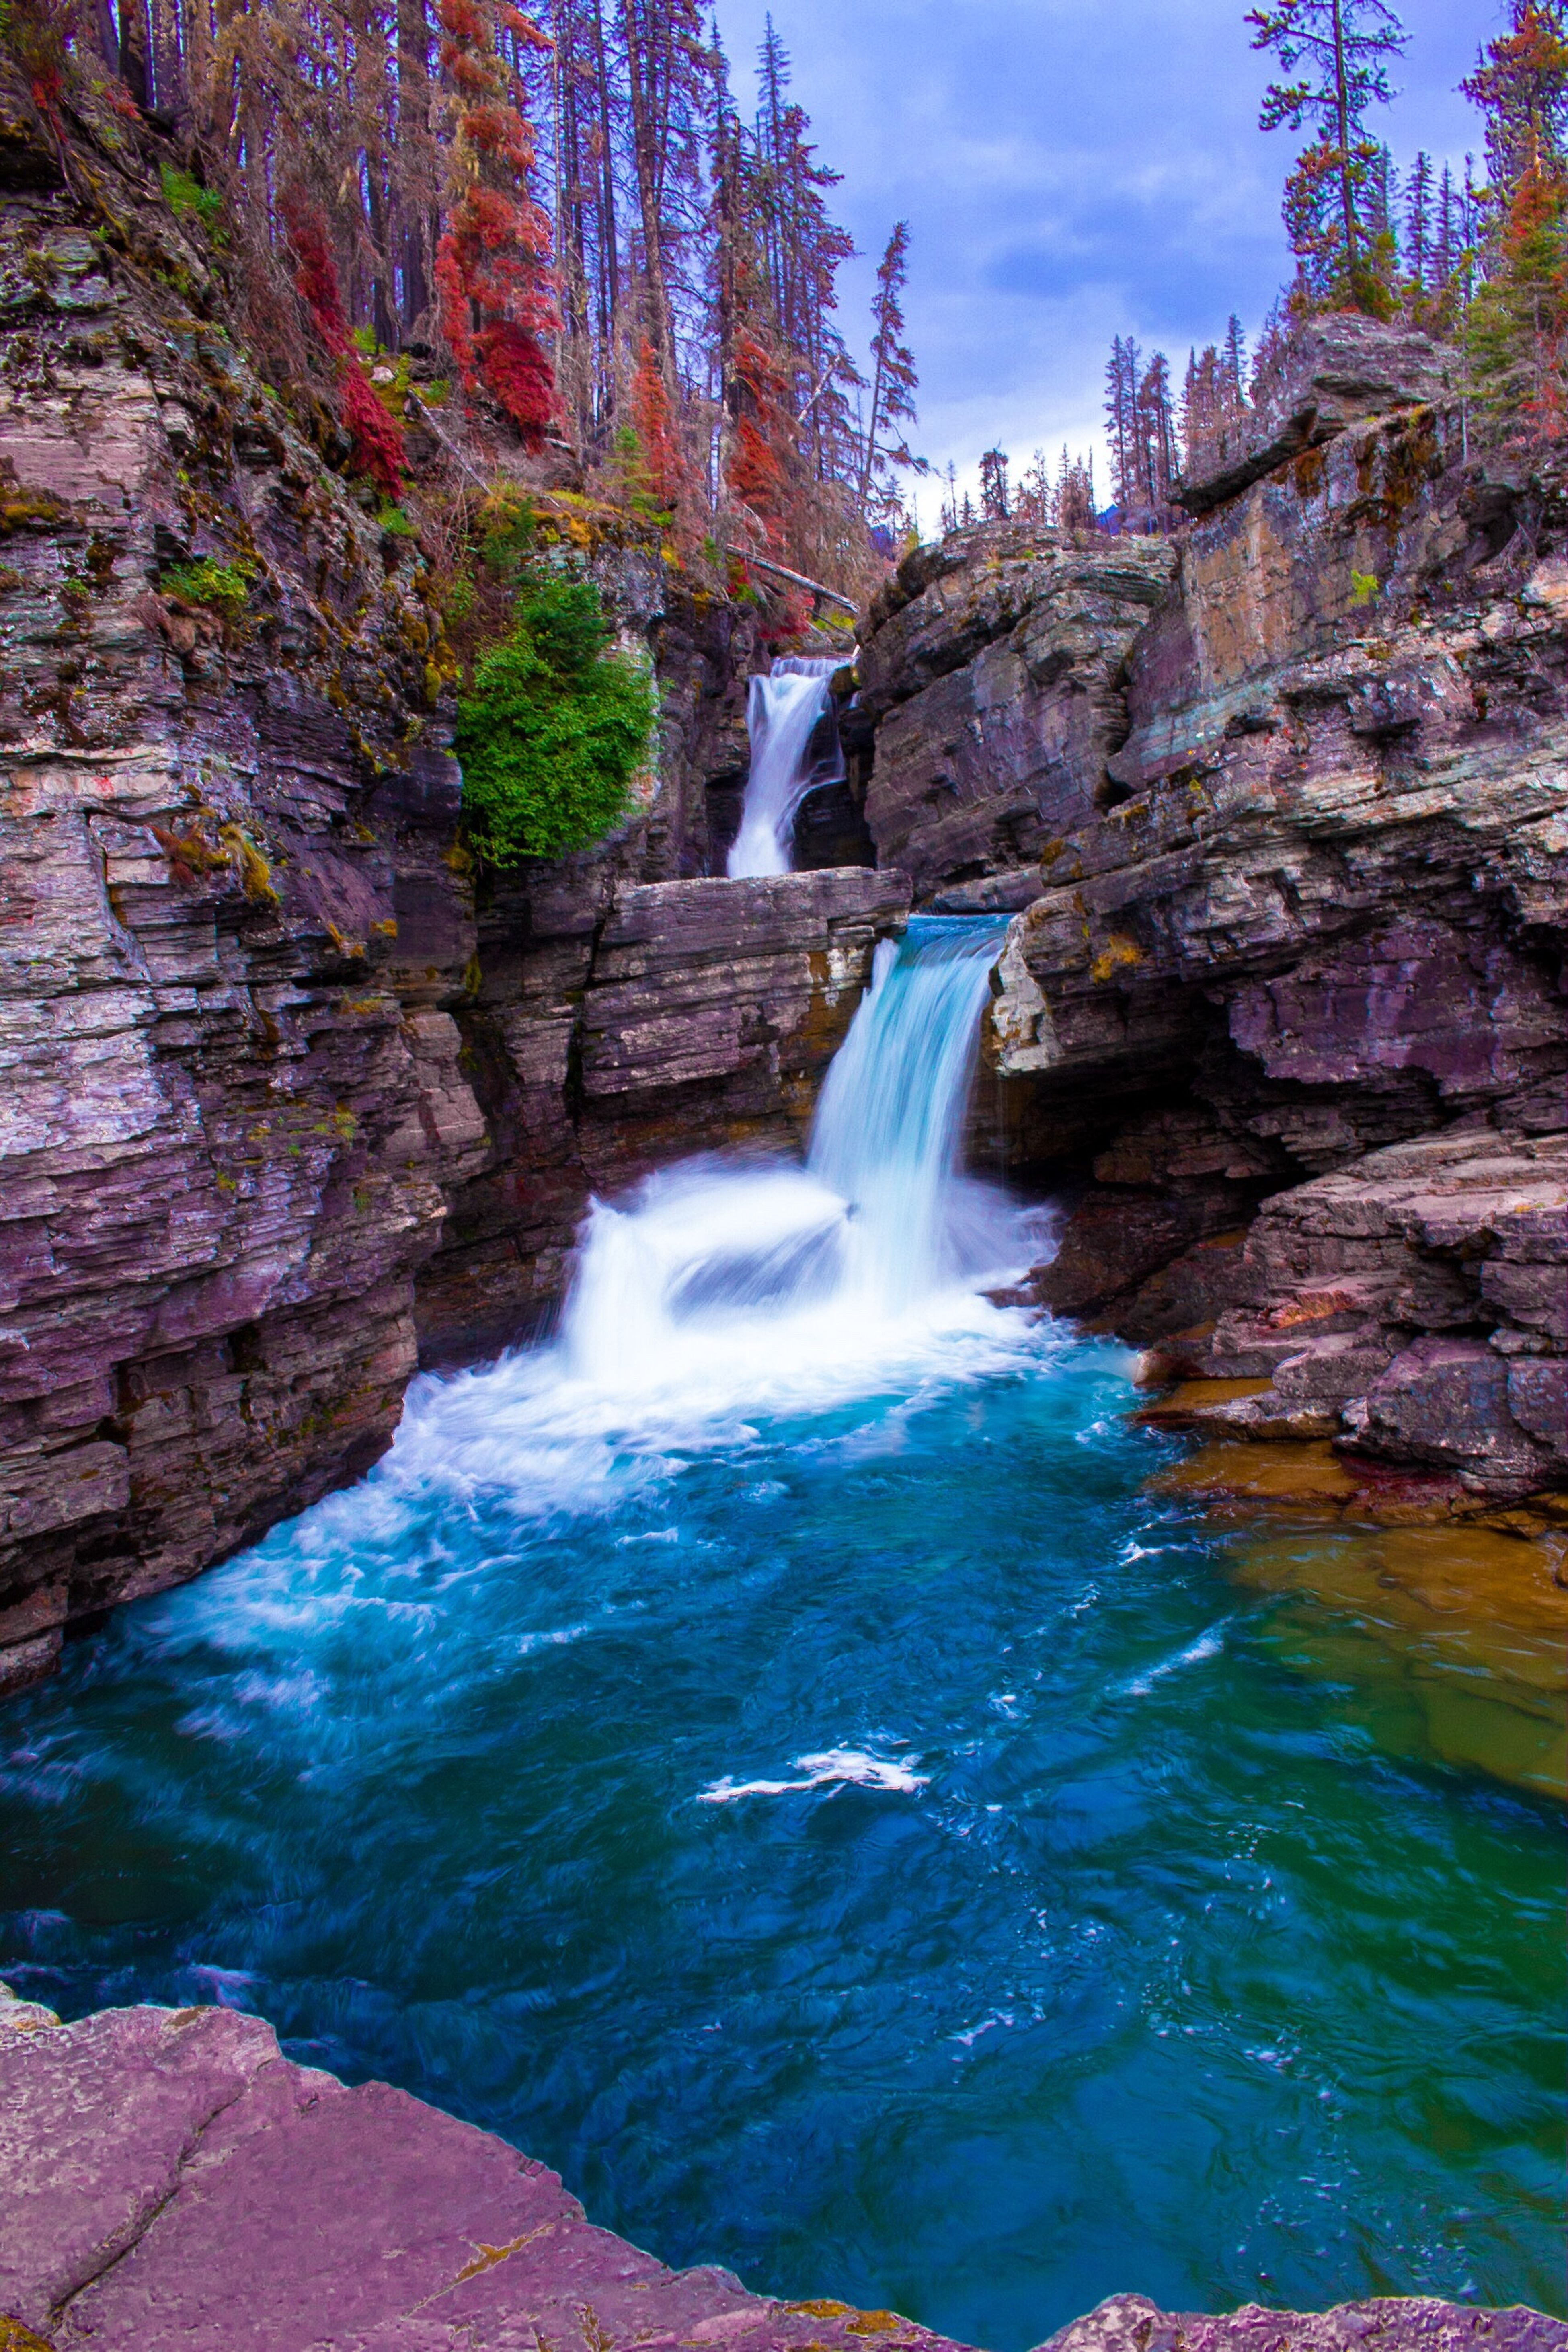 glacier national park montana Waterfall Glacier National Park Glaciernationalparkmontana Natgeotravel Natgeotravelpic Natgeo Travel Montana Travel Photography Glaciernps Montanamoment Explore Montana Goingtothesunroad Mountain Vibes Montana Waterfall Montana Photography Outdoor Photography EyeEm Nature Lover